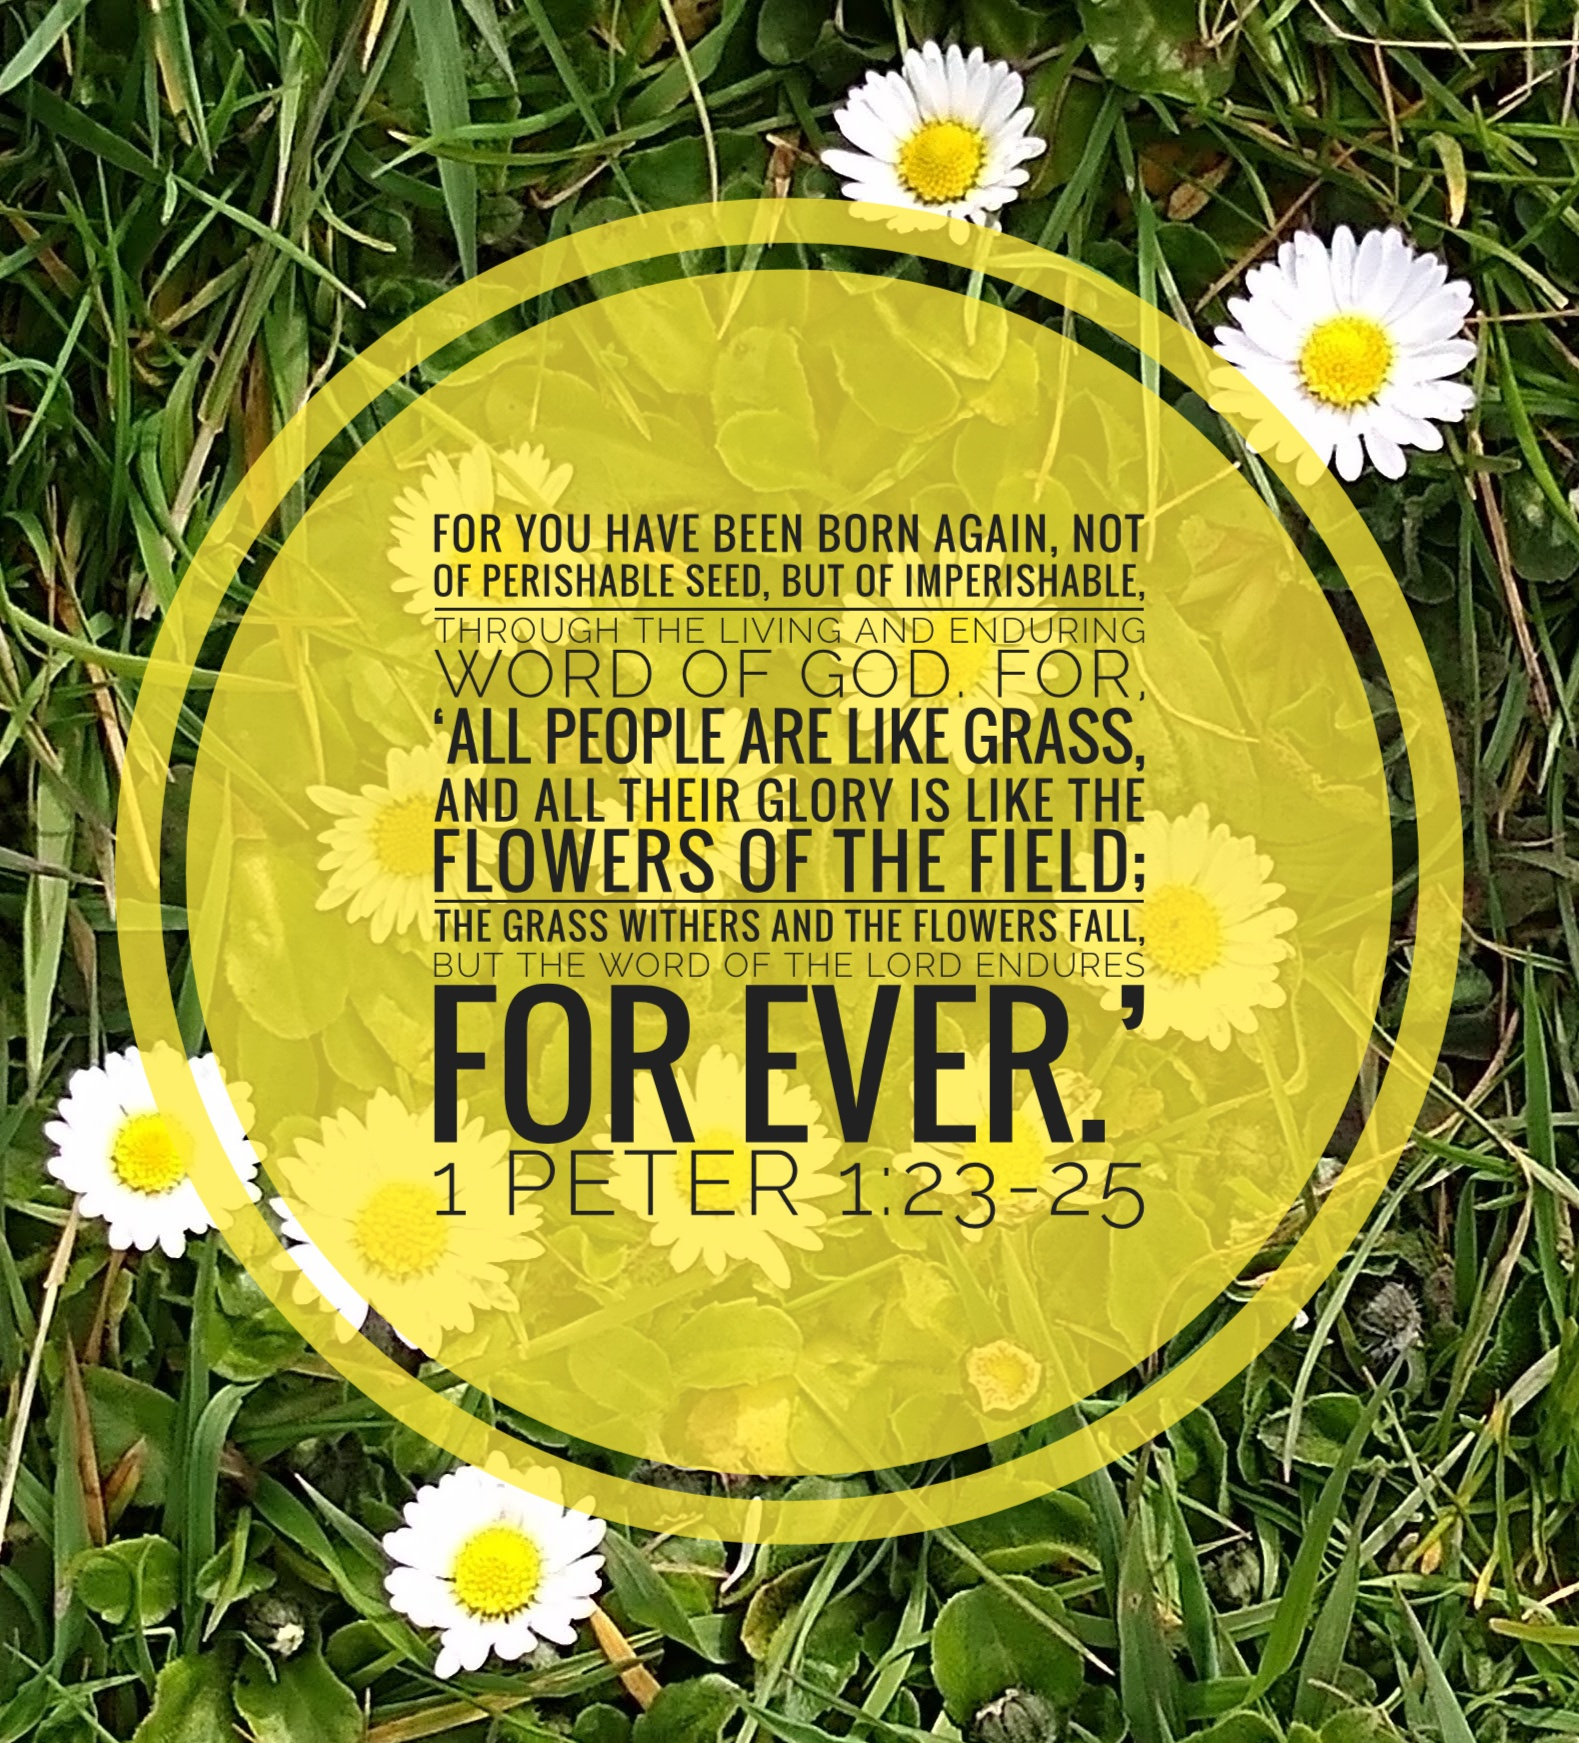 [Text on yellow disc over picture of white/yellow daisies on green grass] For you have been born again, not of perishable seed, but of imperishable, through the living and enduring word of God. For, 'All people are like grass, and all their glory is like the flowers of the field; the grass withers and the flowers fall, but the word of the Lord endures for ever.'